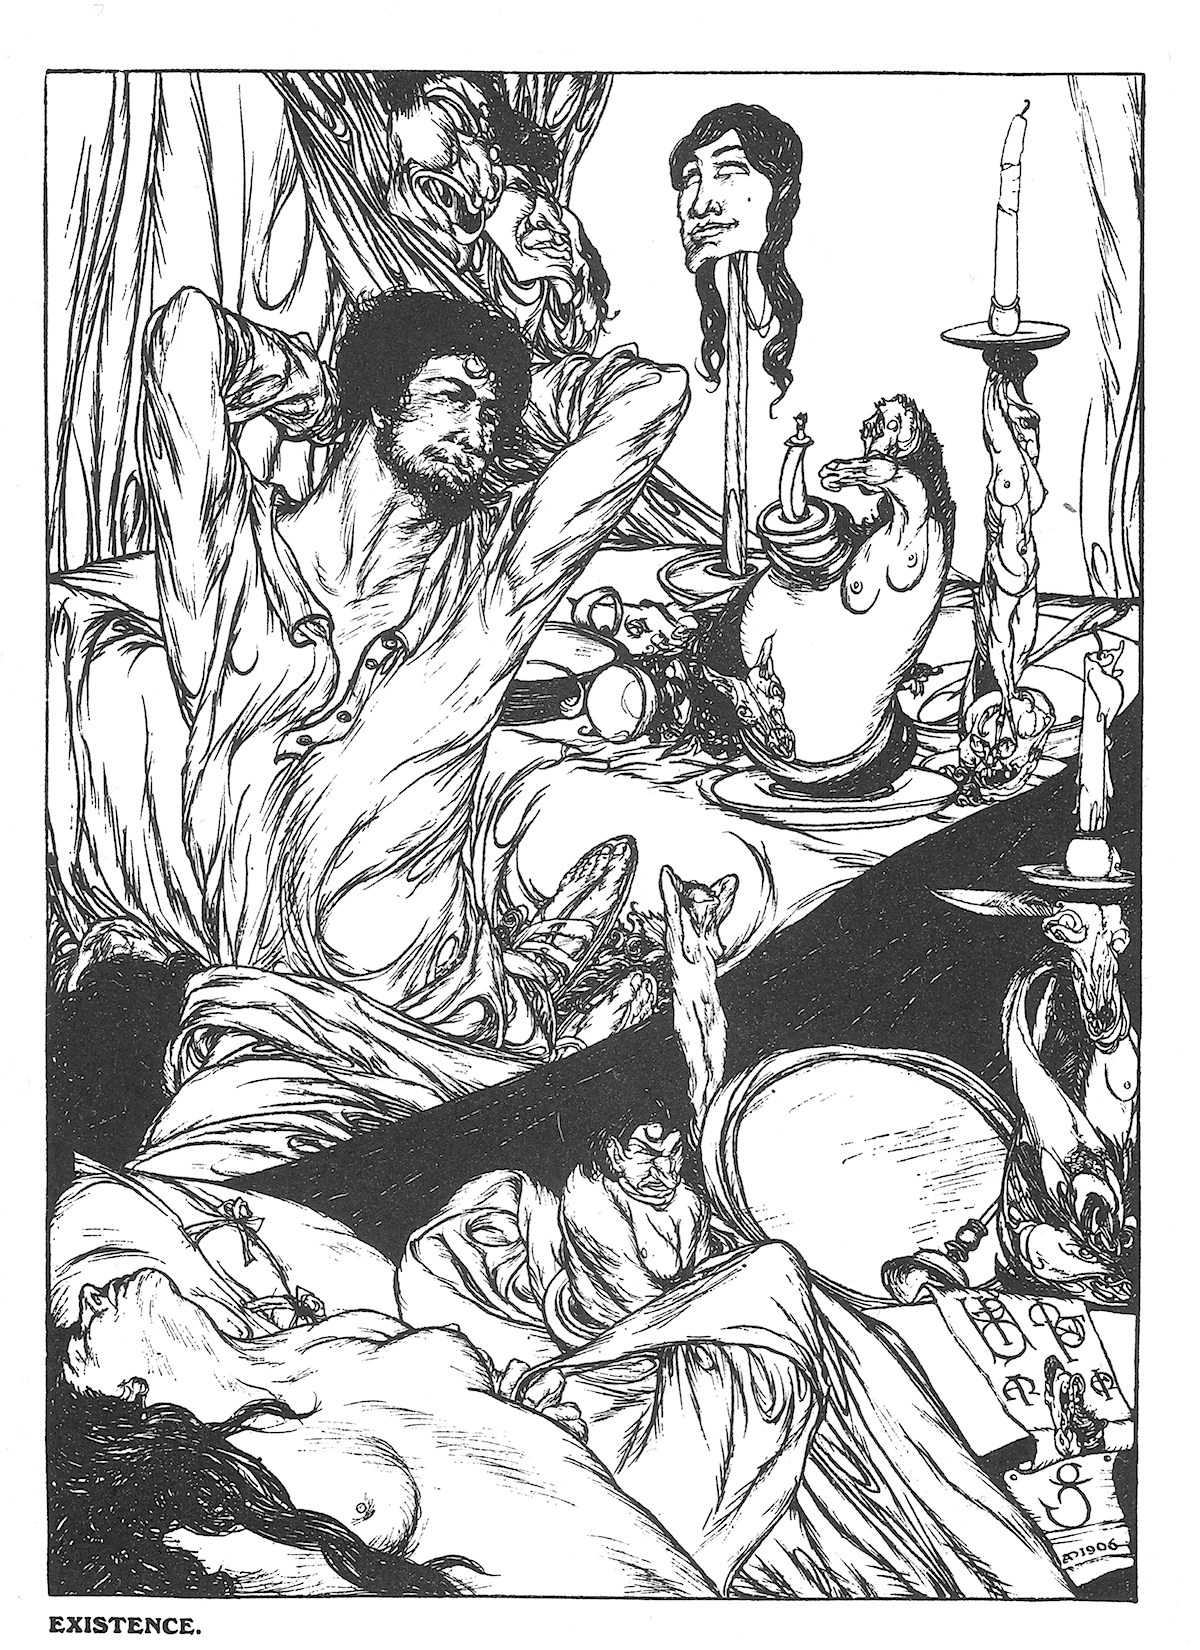 Austin Osman Spare, illustration, occult, Book of Satyrs